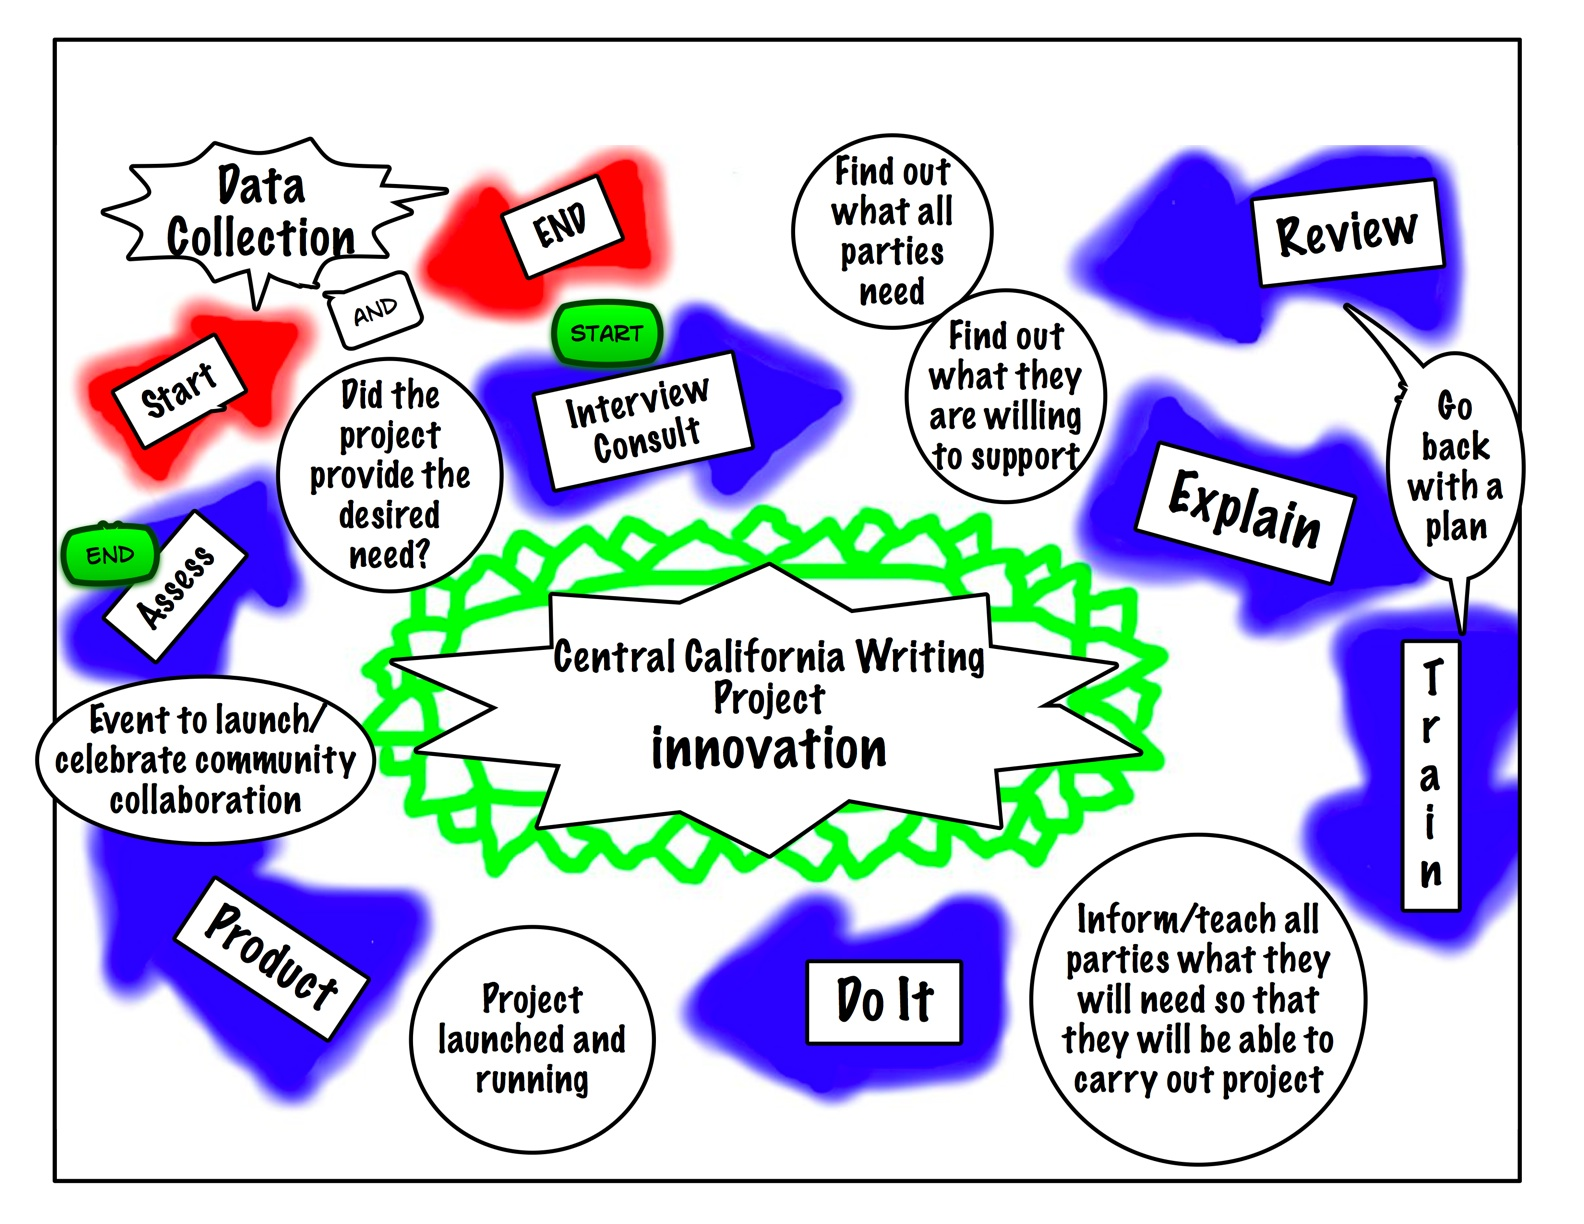 Central California Writing Project (CCWP) Innovation Planning